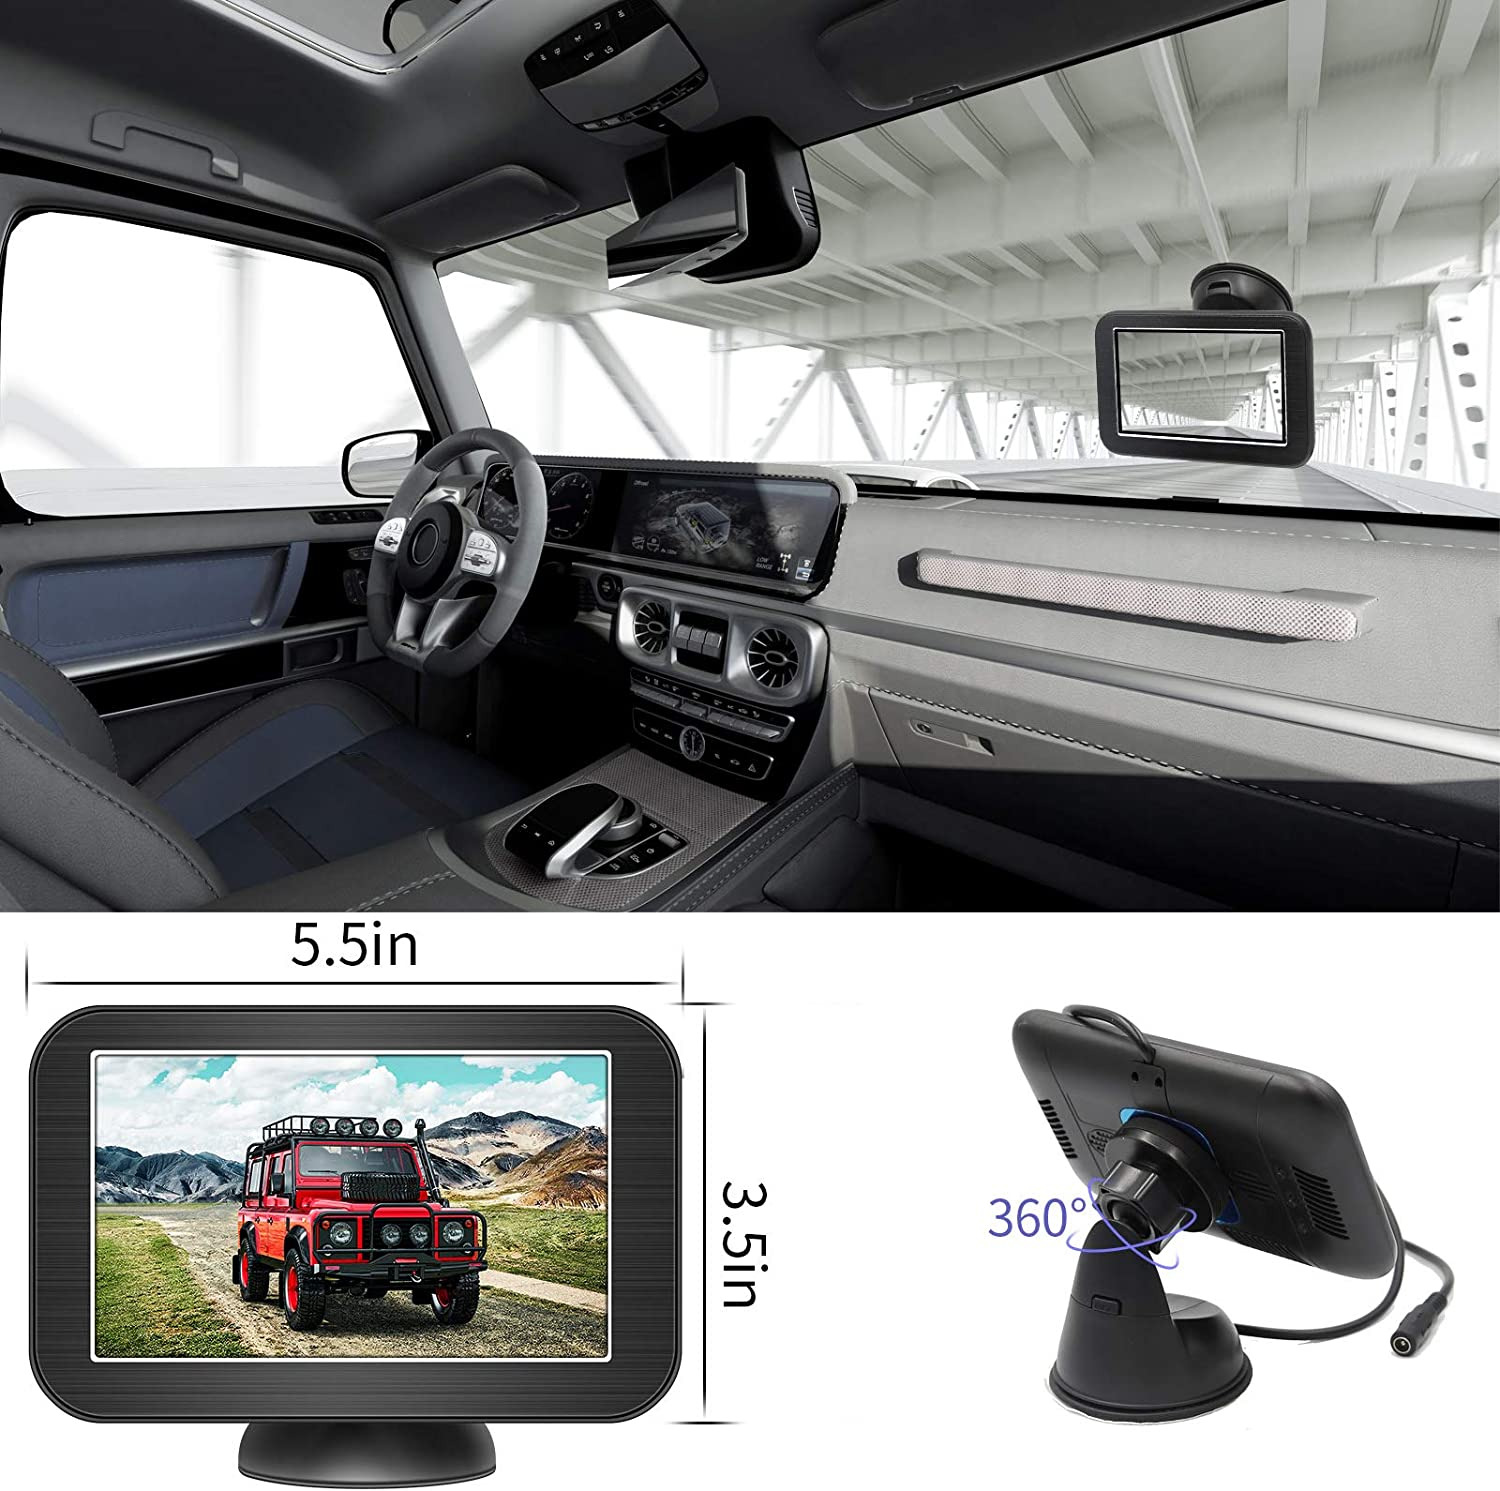 Trucks SUV B-Qtech 5 Wireless Backup Camera and Monitor Kit丨Waterproof Night Vision Front//Rear View Camera with Grid Line丨Easy Installation for Cars Camping Car Pickups